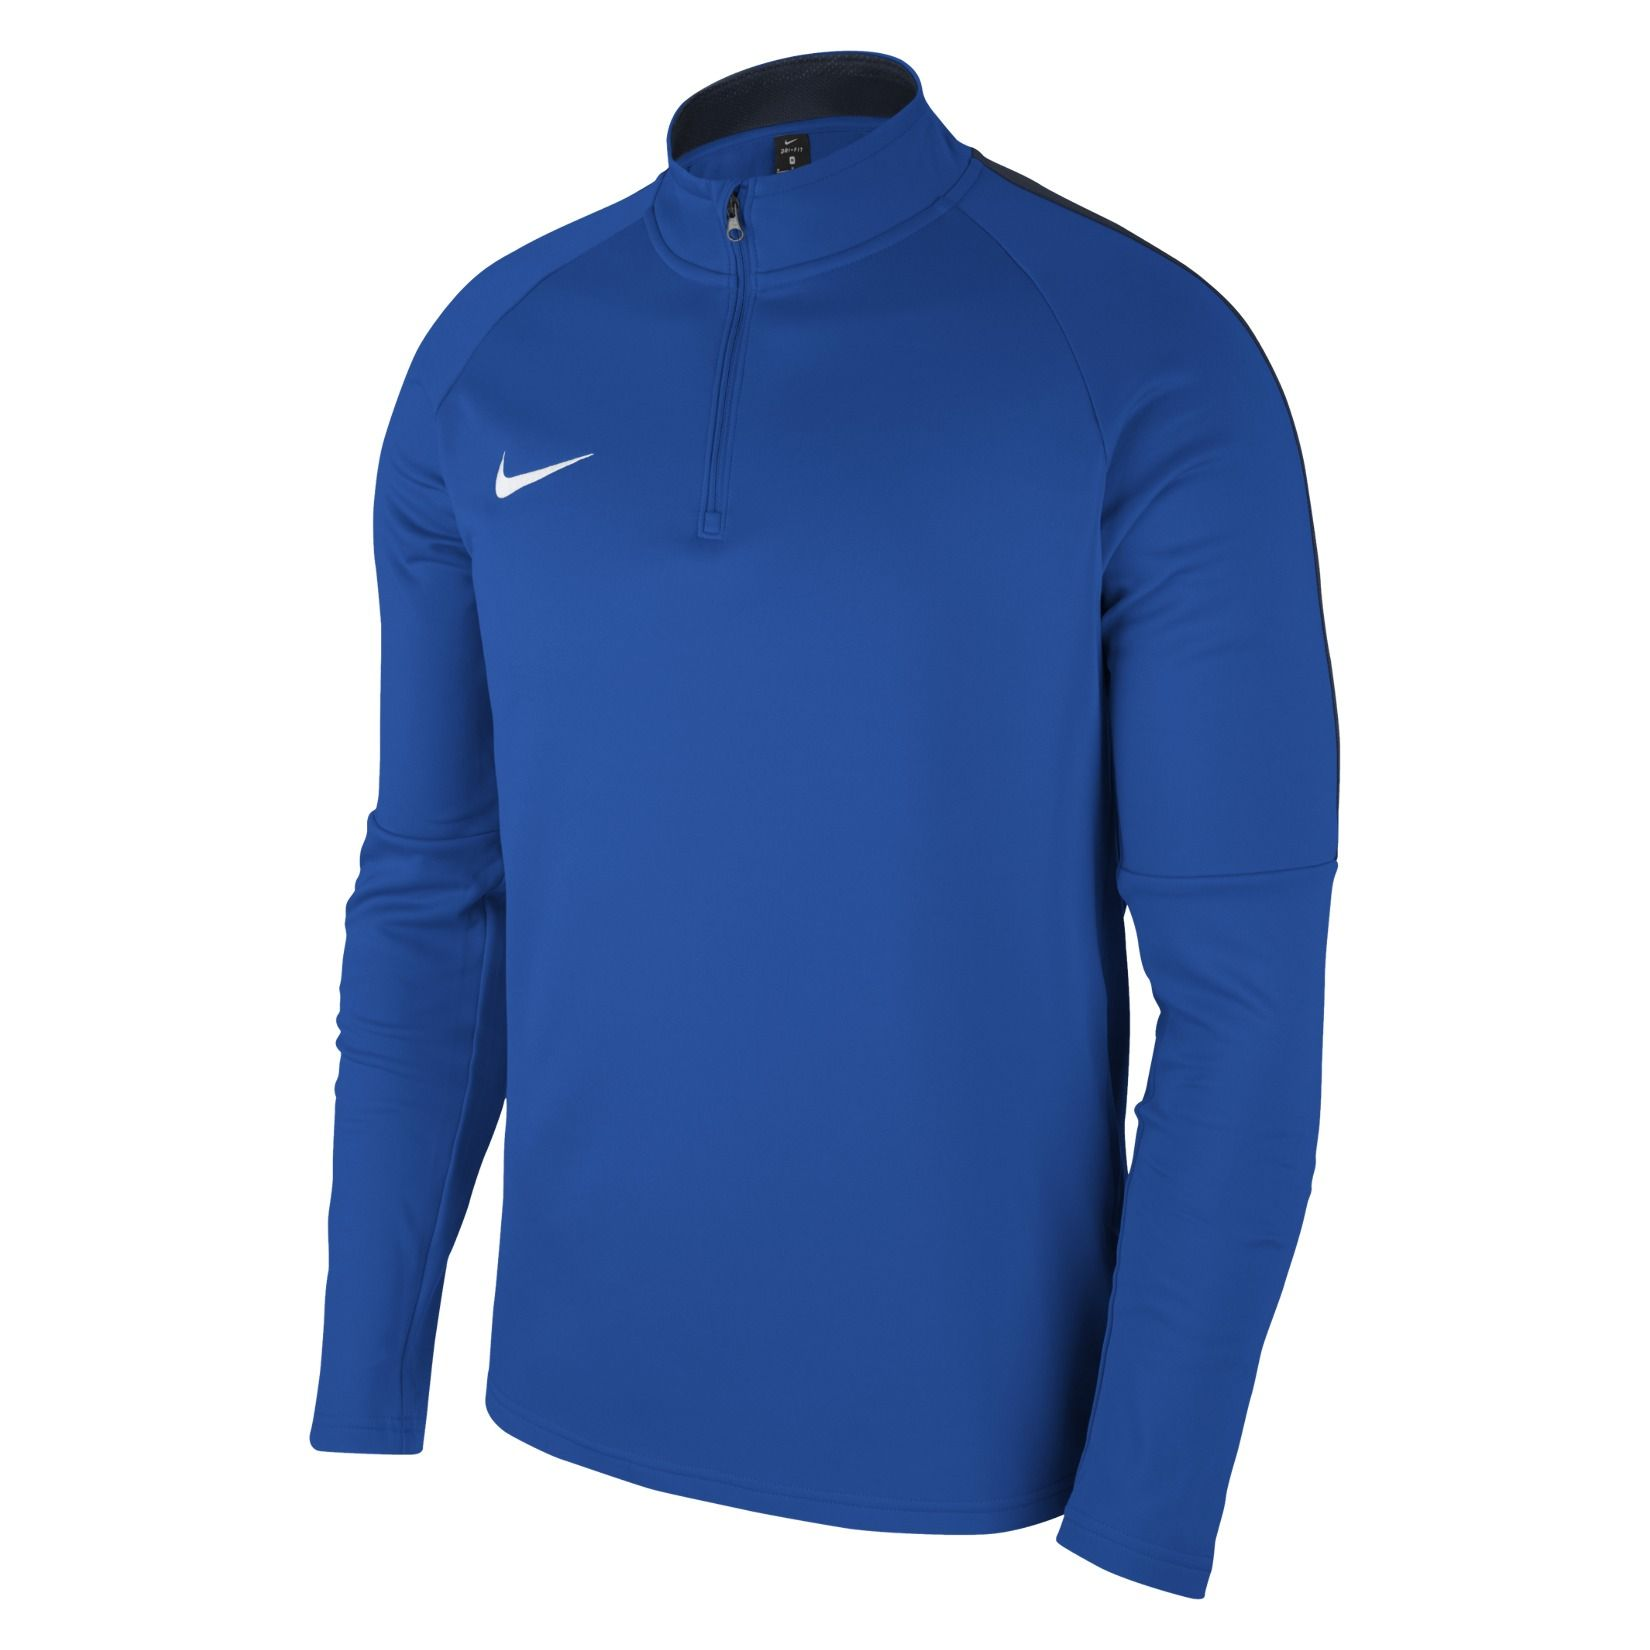 NIKE DRY ACDMY18 DRIL TOP LS 893624-463